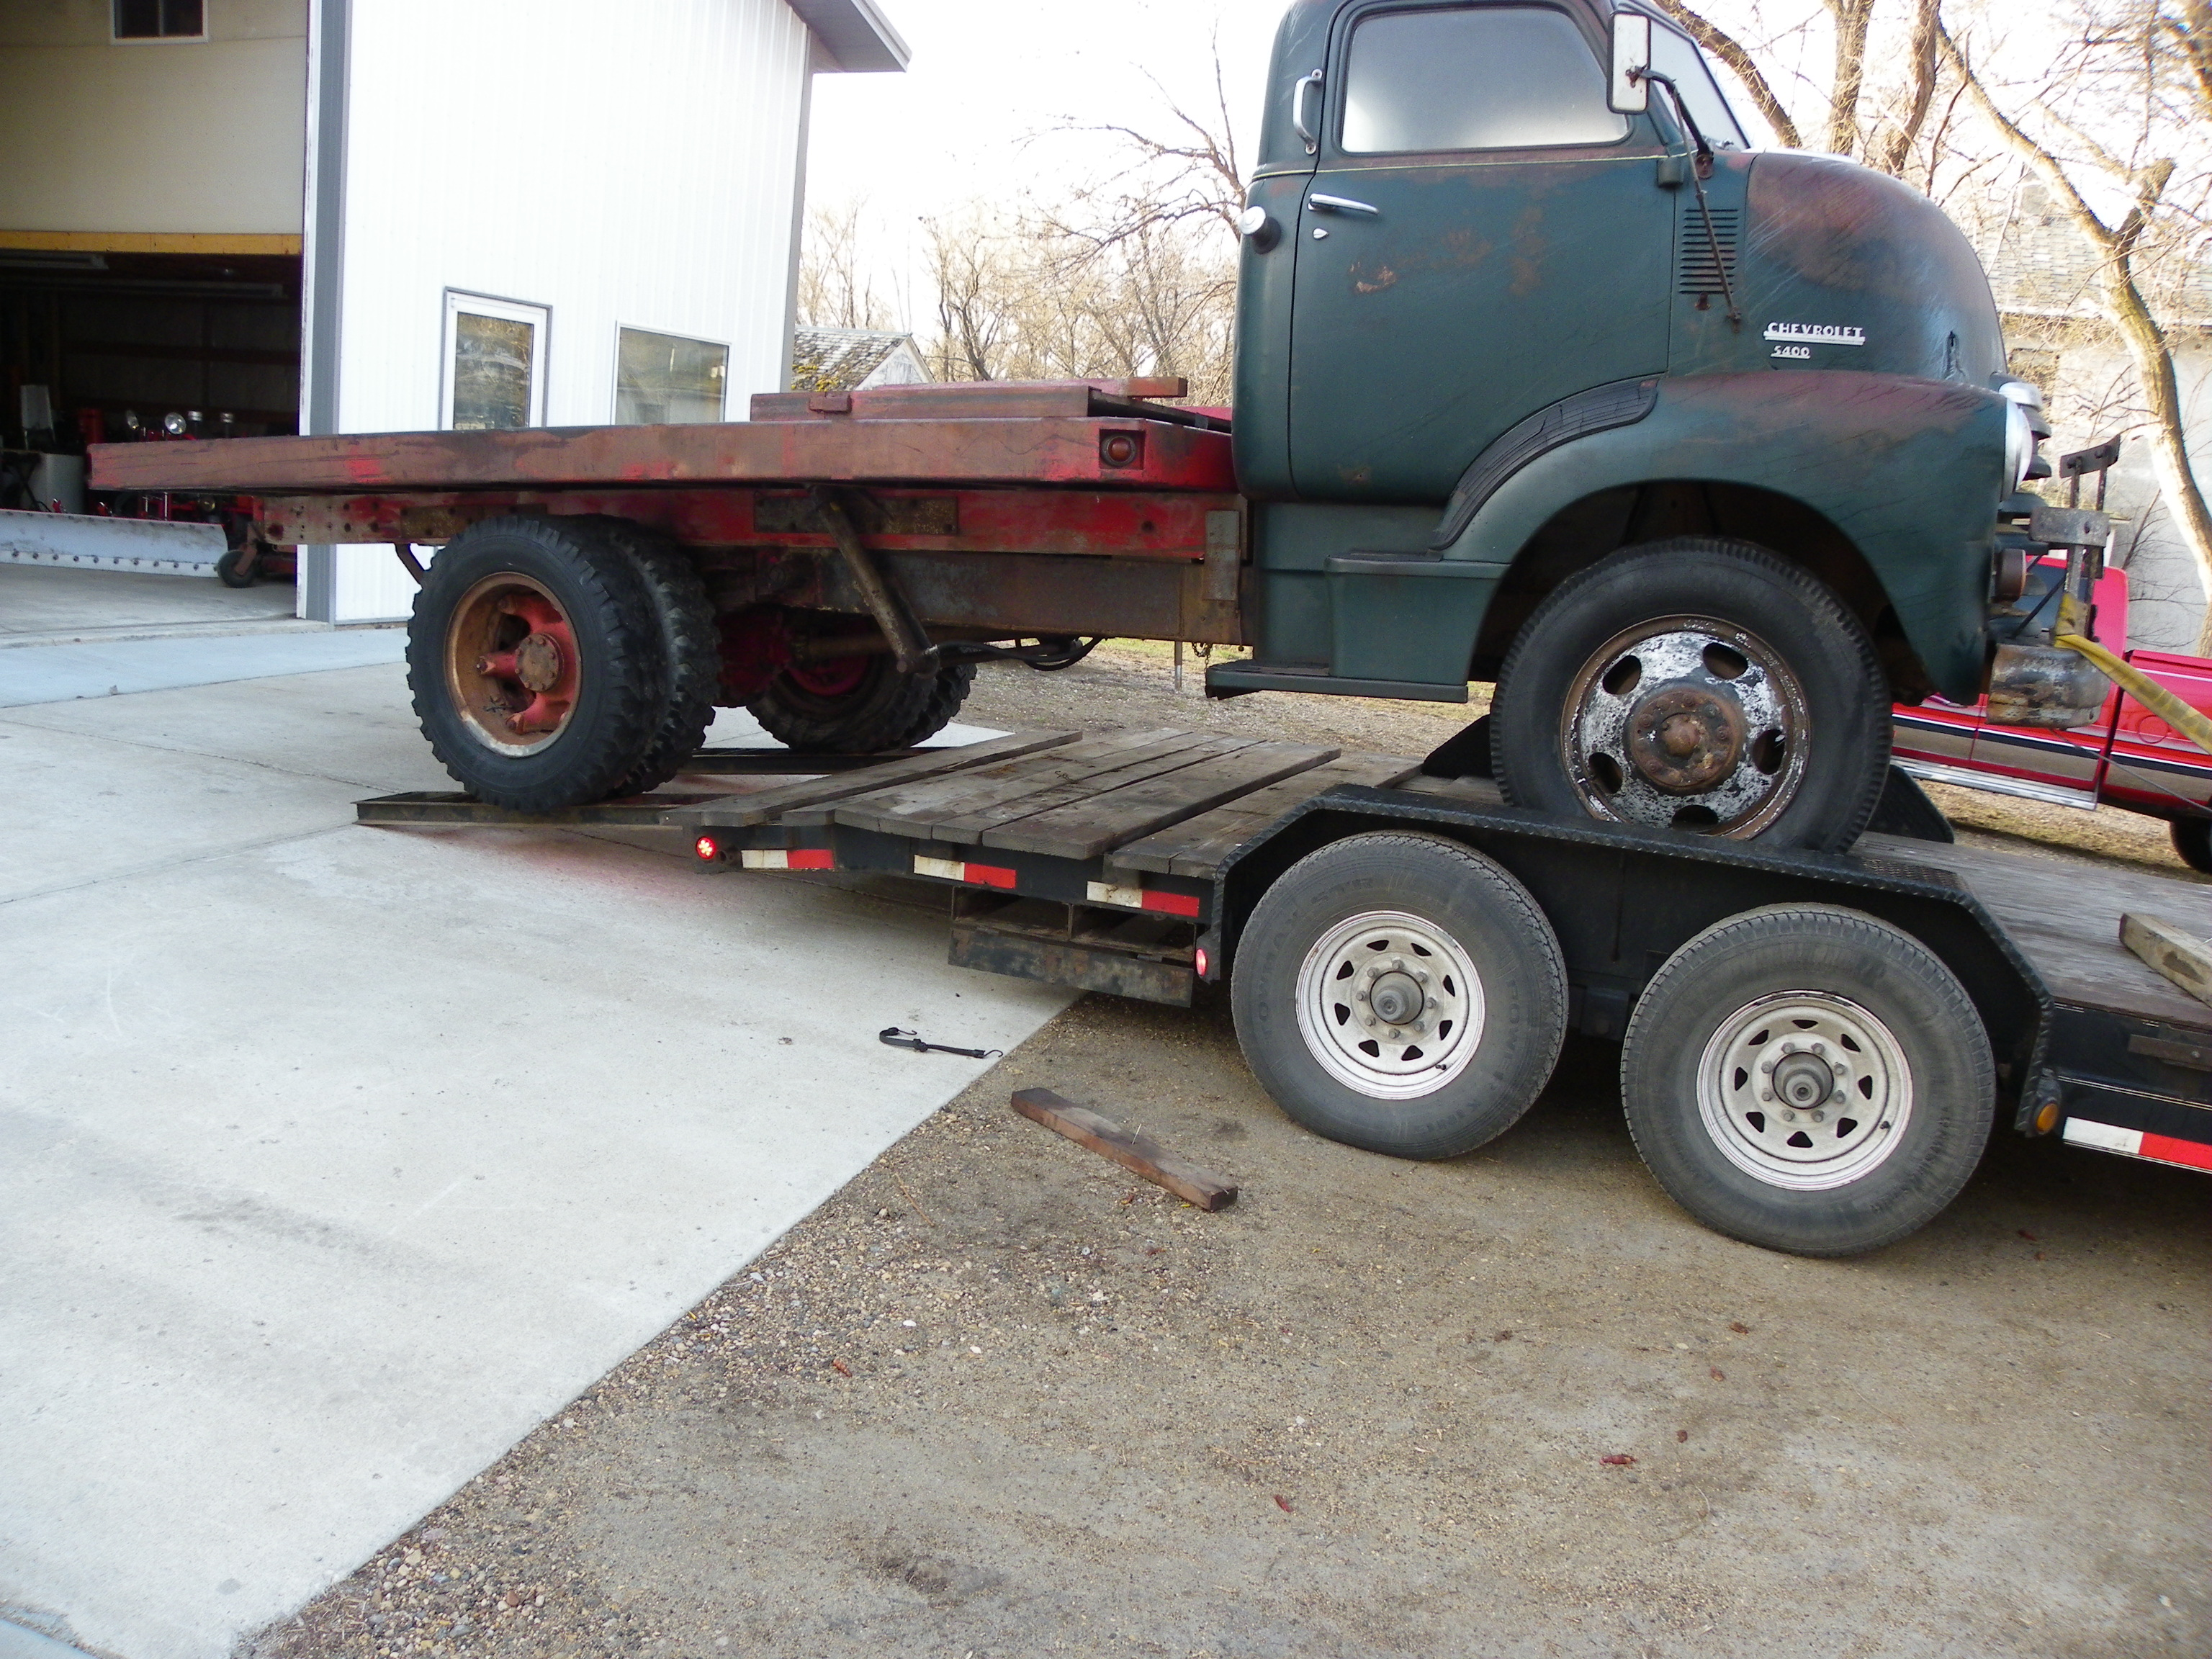 1950 Chevrolet COE Flatbed Truck - Kustoms by Kent